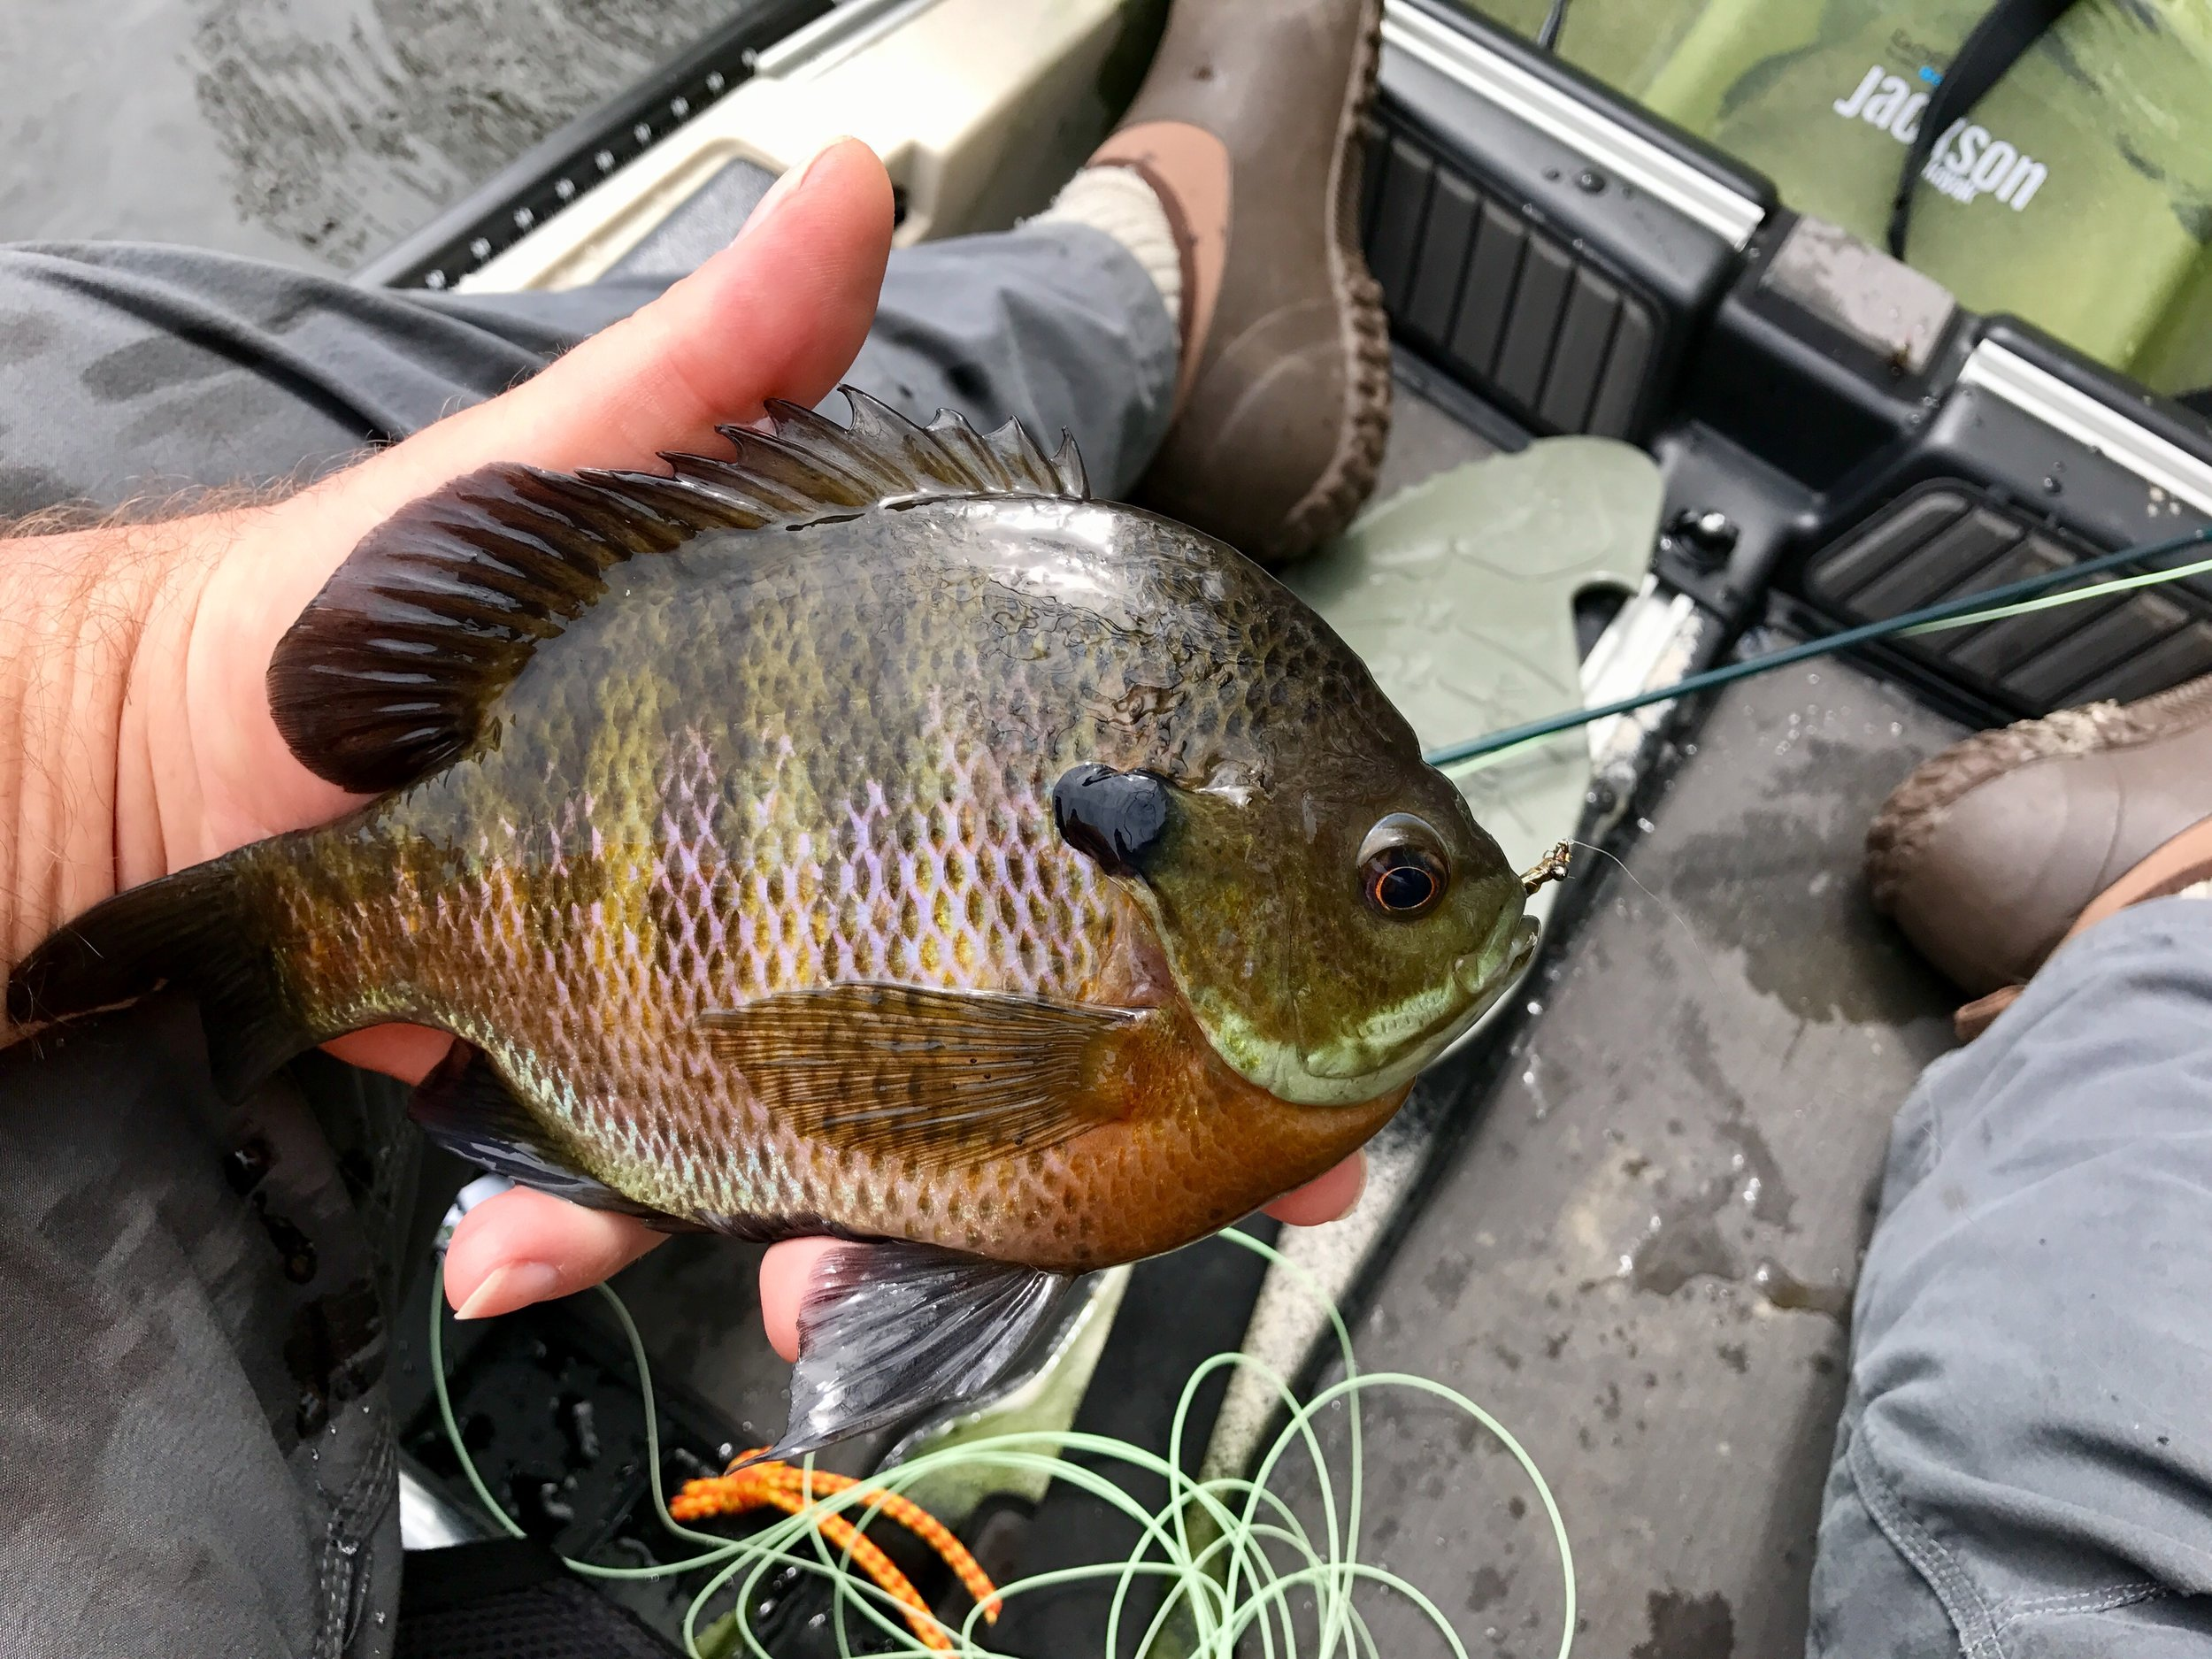 Larger bluegills often hold in deeper water. You will have to adjust your presentation methods and your fly selection to reach these fish.